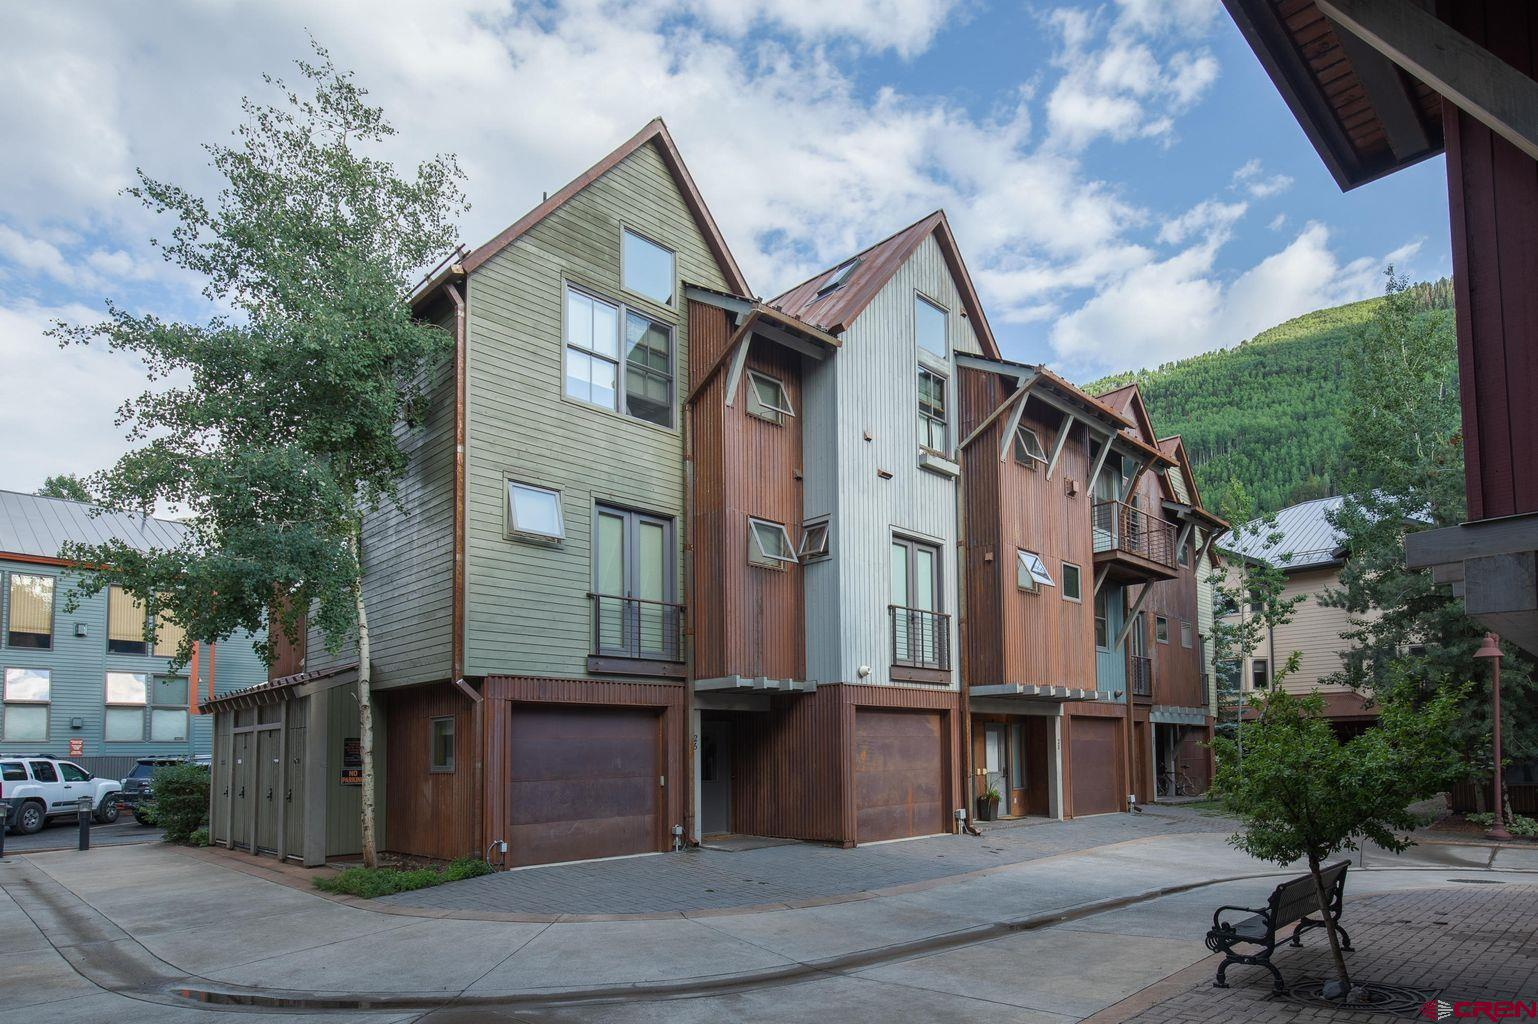 Amazing 3 bed 3 bath residence in the exclusive Owl Meadows town home community. Nicely updated end unit with only one shared wall. Tremendous views to the North and East to Ingram Falls and Ajax Peak. Very enjoyable floor plan, ease of ownership, low HOA dues, private 1 car garage, stainless professional grade appliances throughout. 3 bedroom has its own entrance for a great lock off use or flex space.